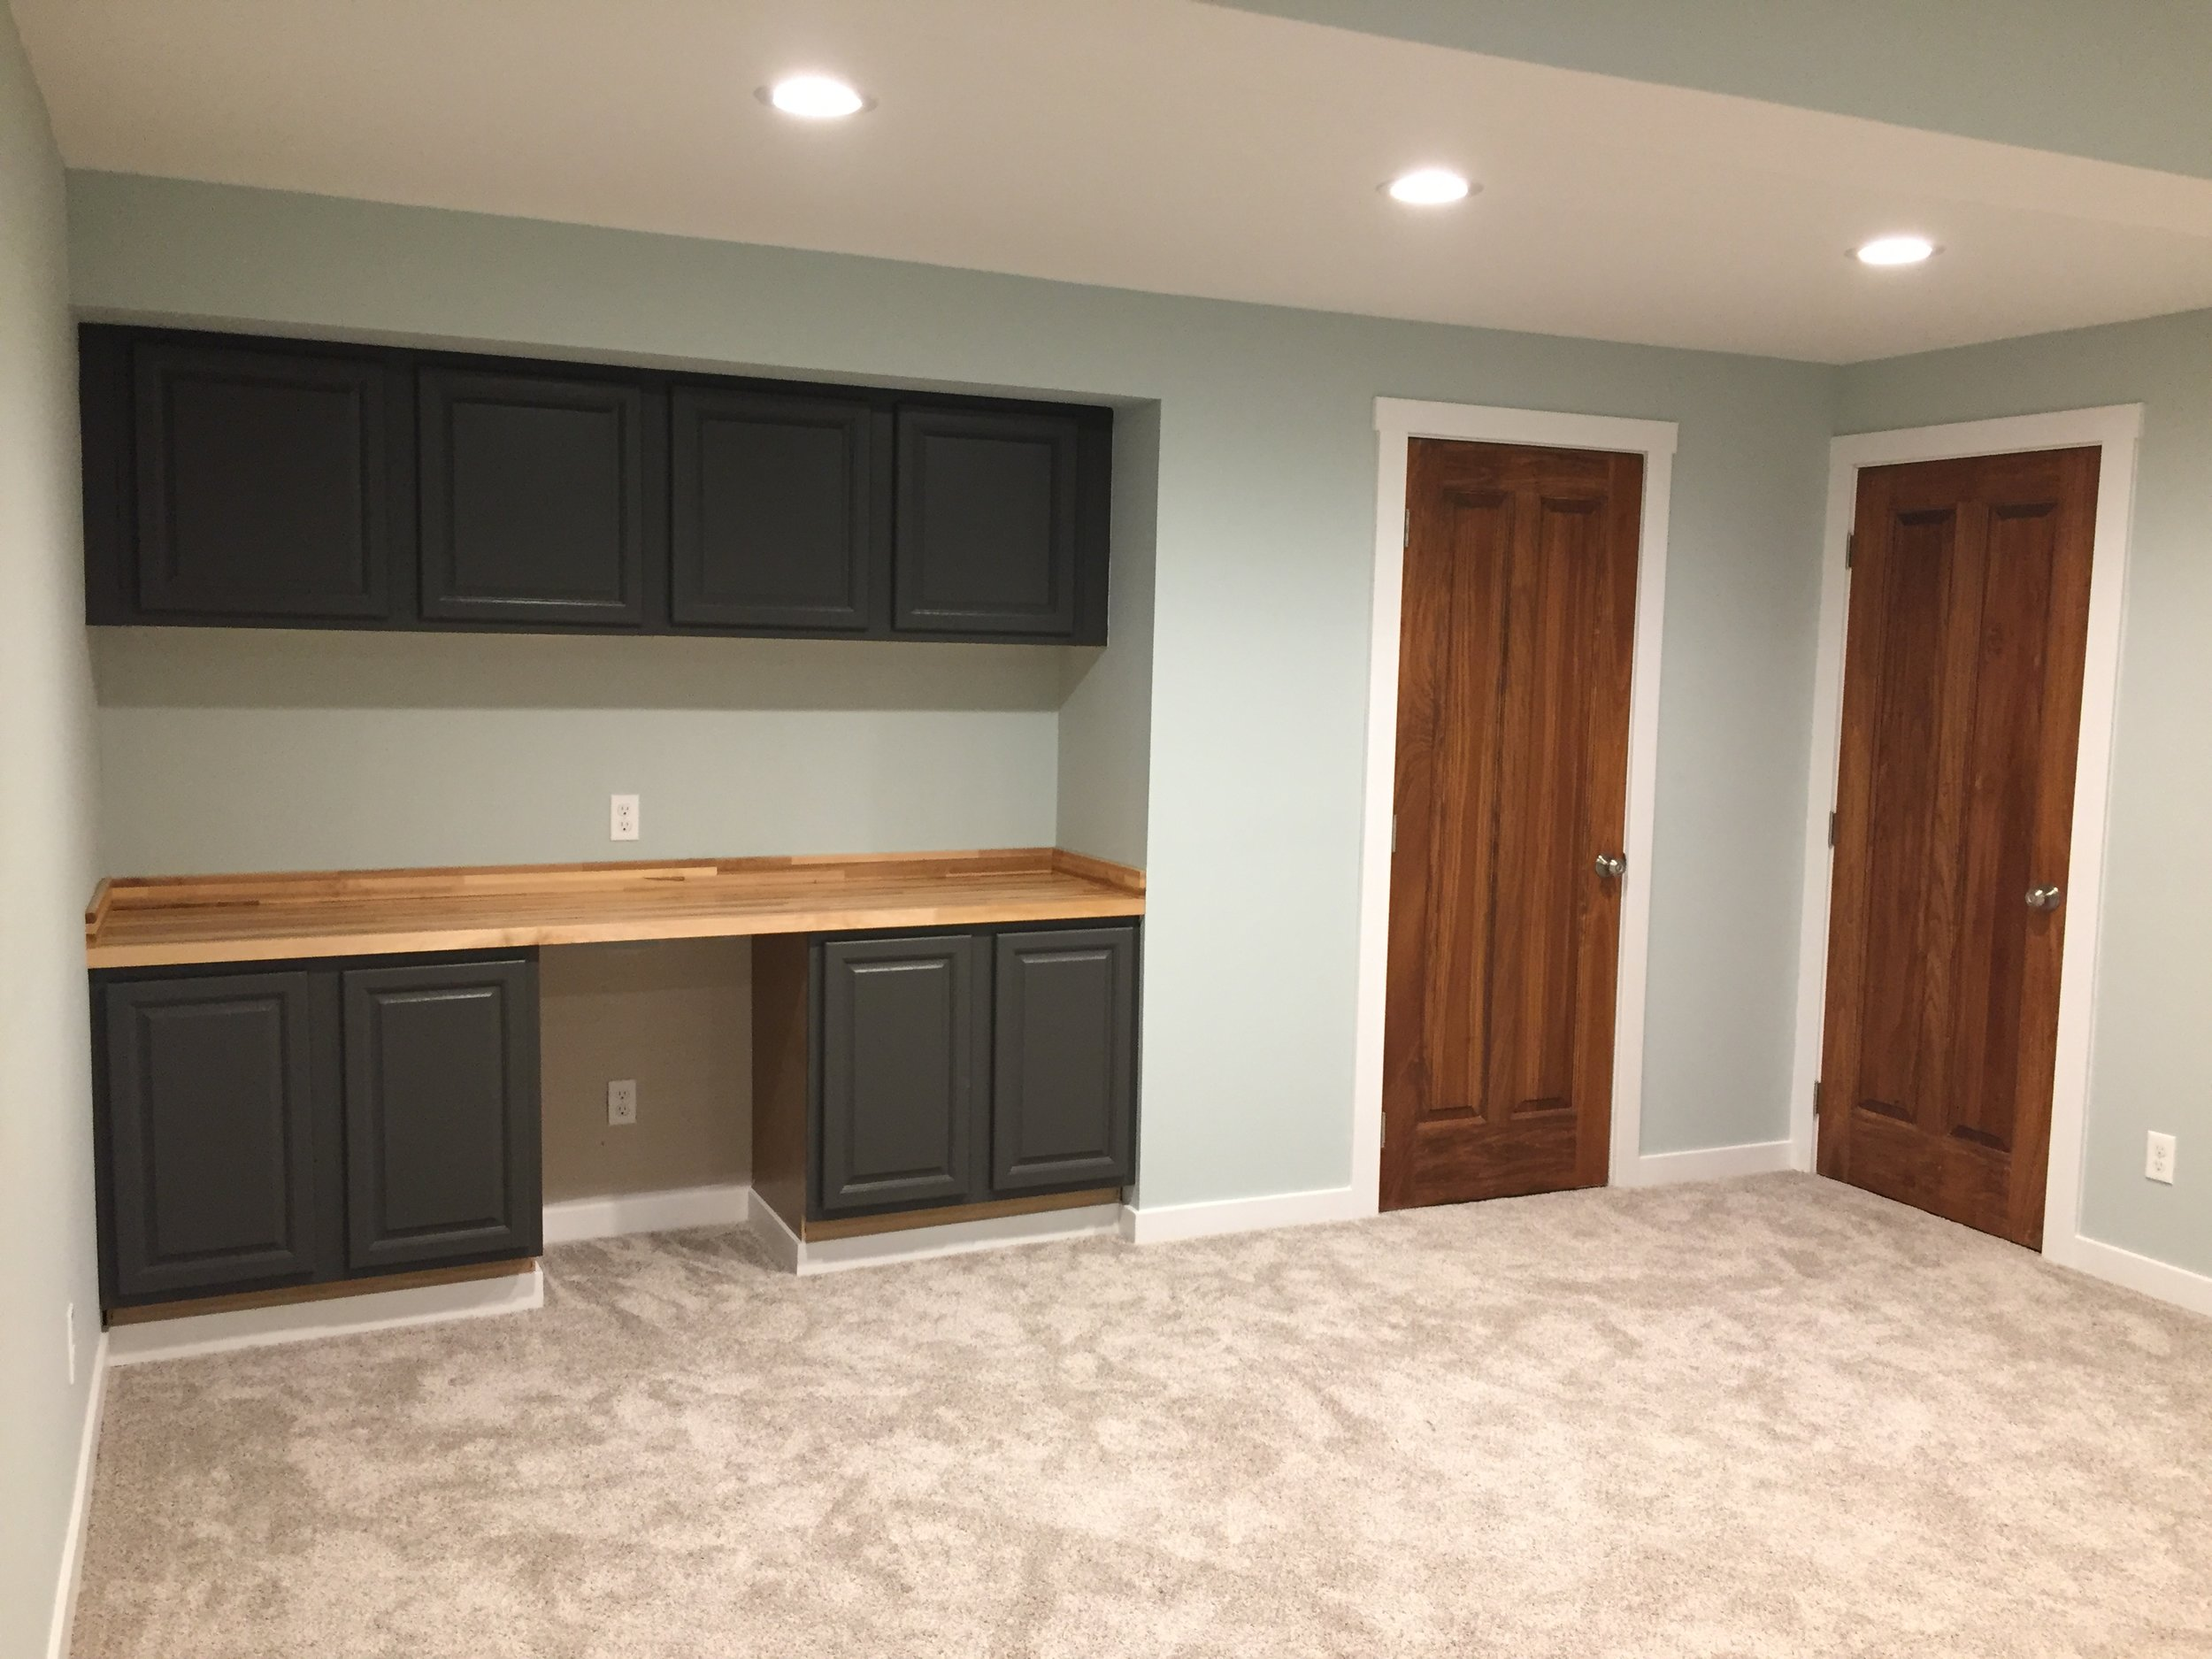 Urbane Bronze Cabinets, Maple Butcher Block, and Sea Glass Walls - Finished Basement